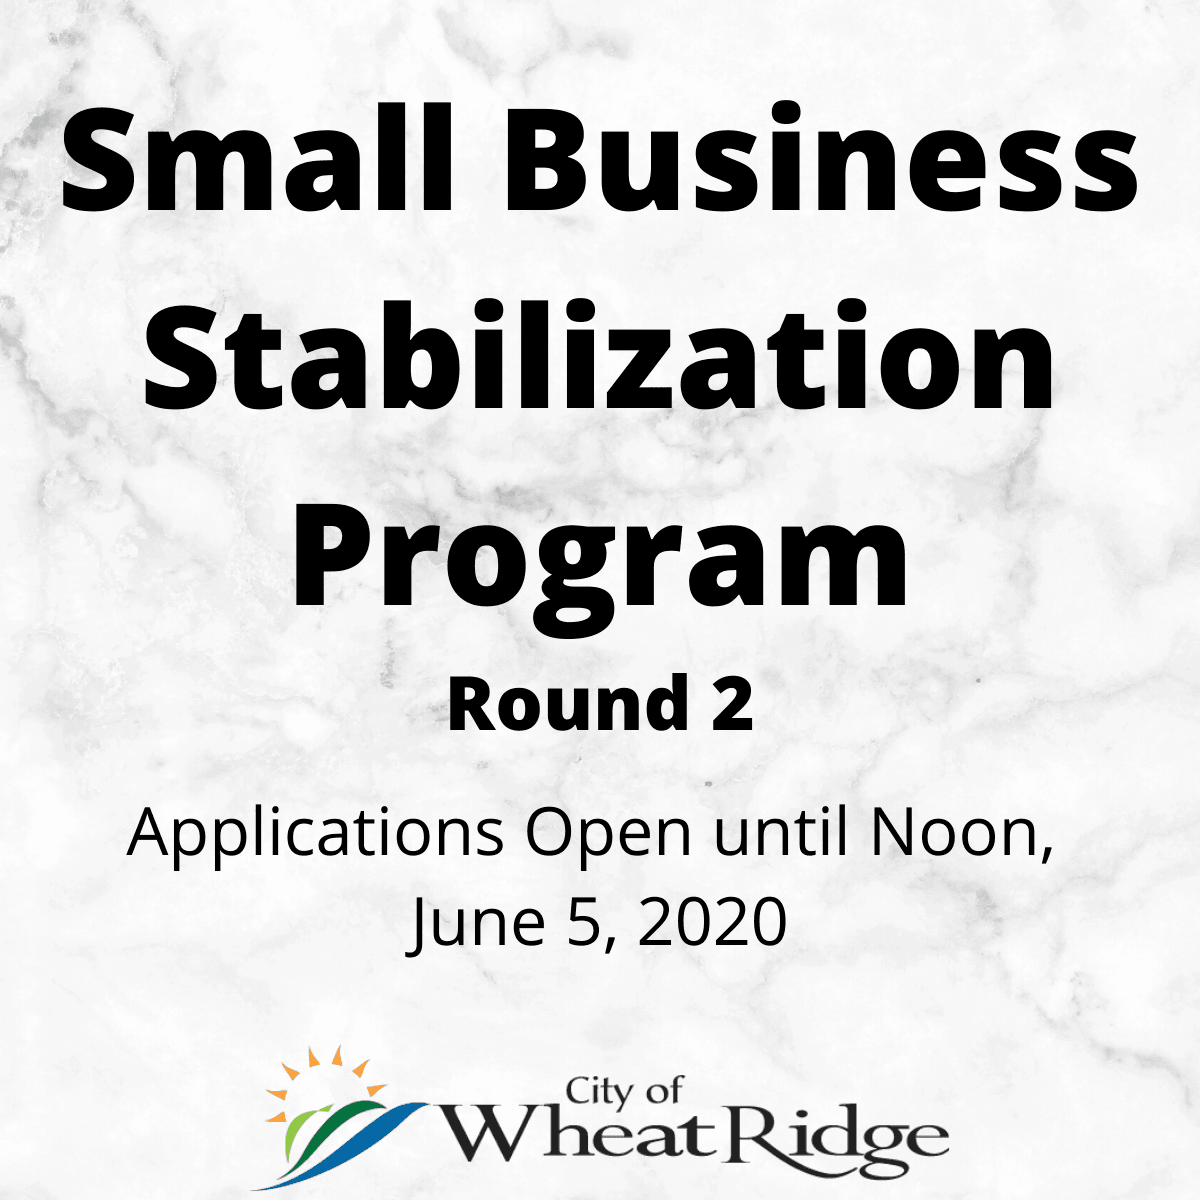 Small Business Stabilization Program